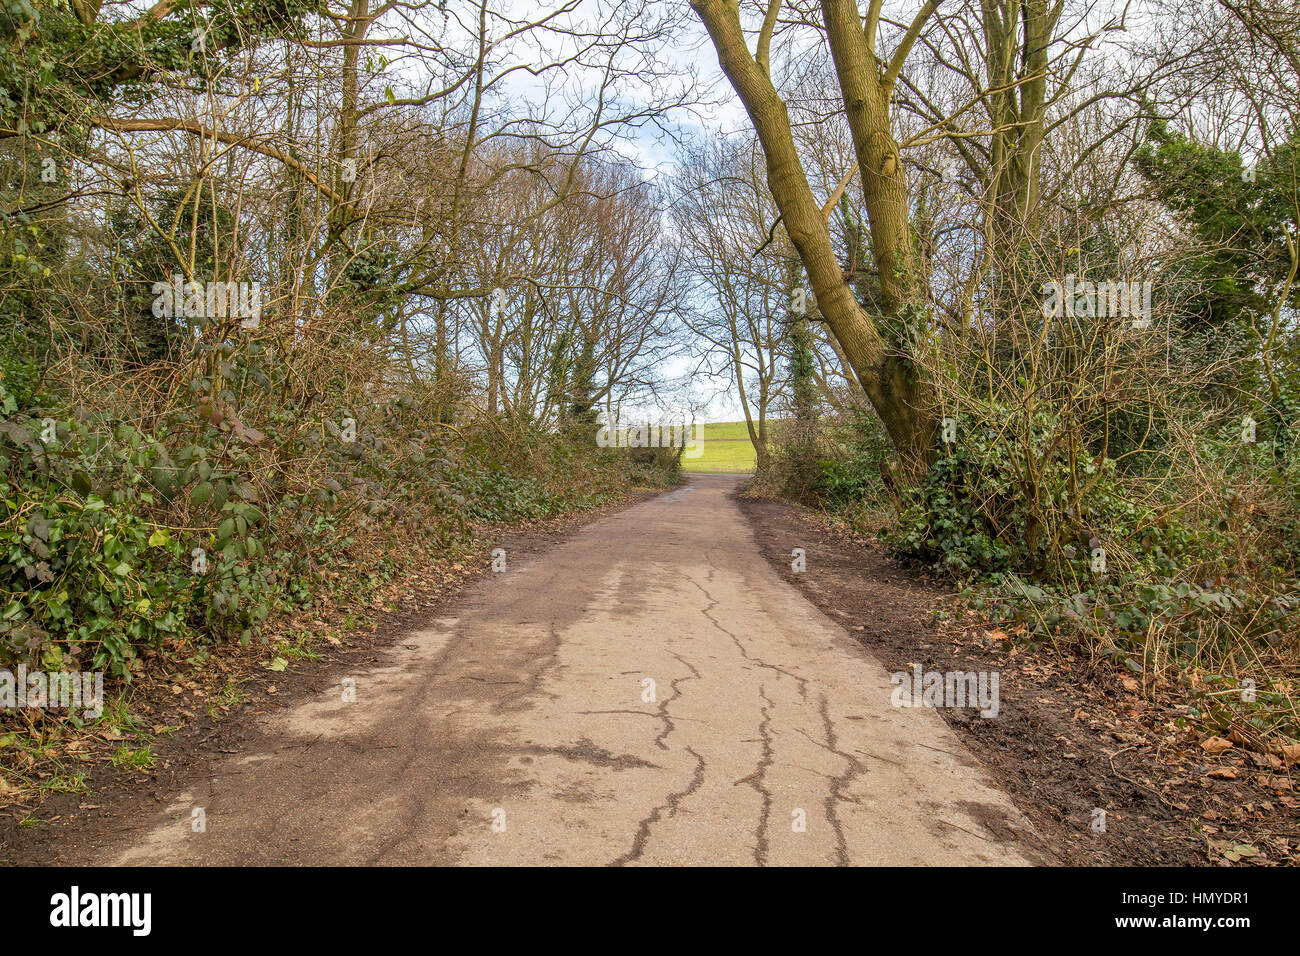 old walking path made of tar in a British park during a claudy day Stock Photo